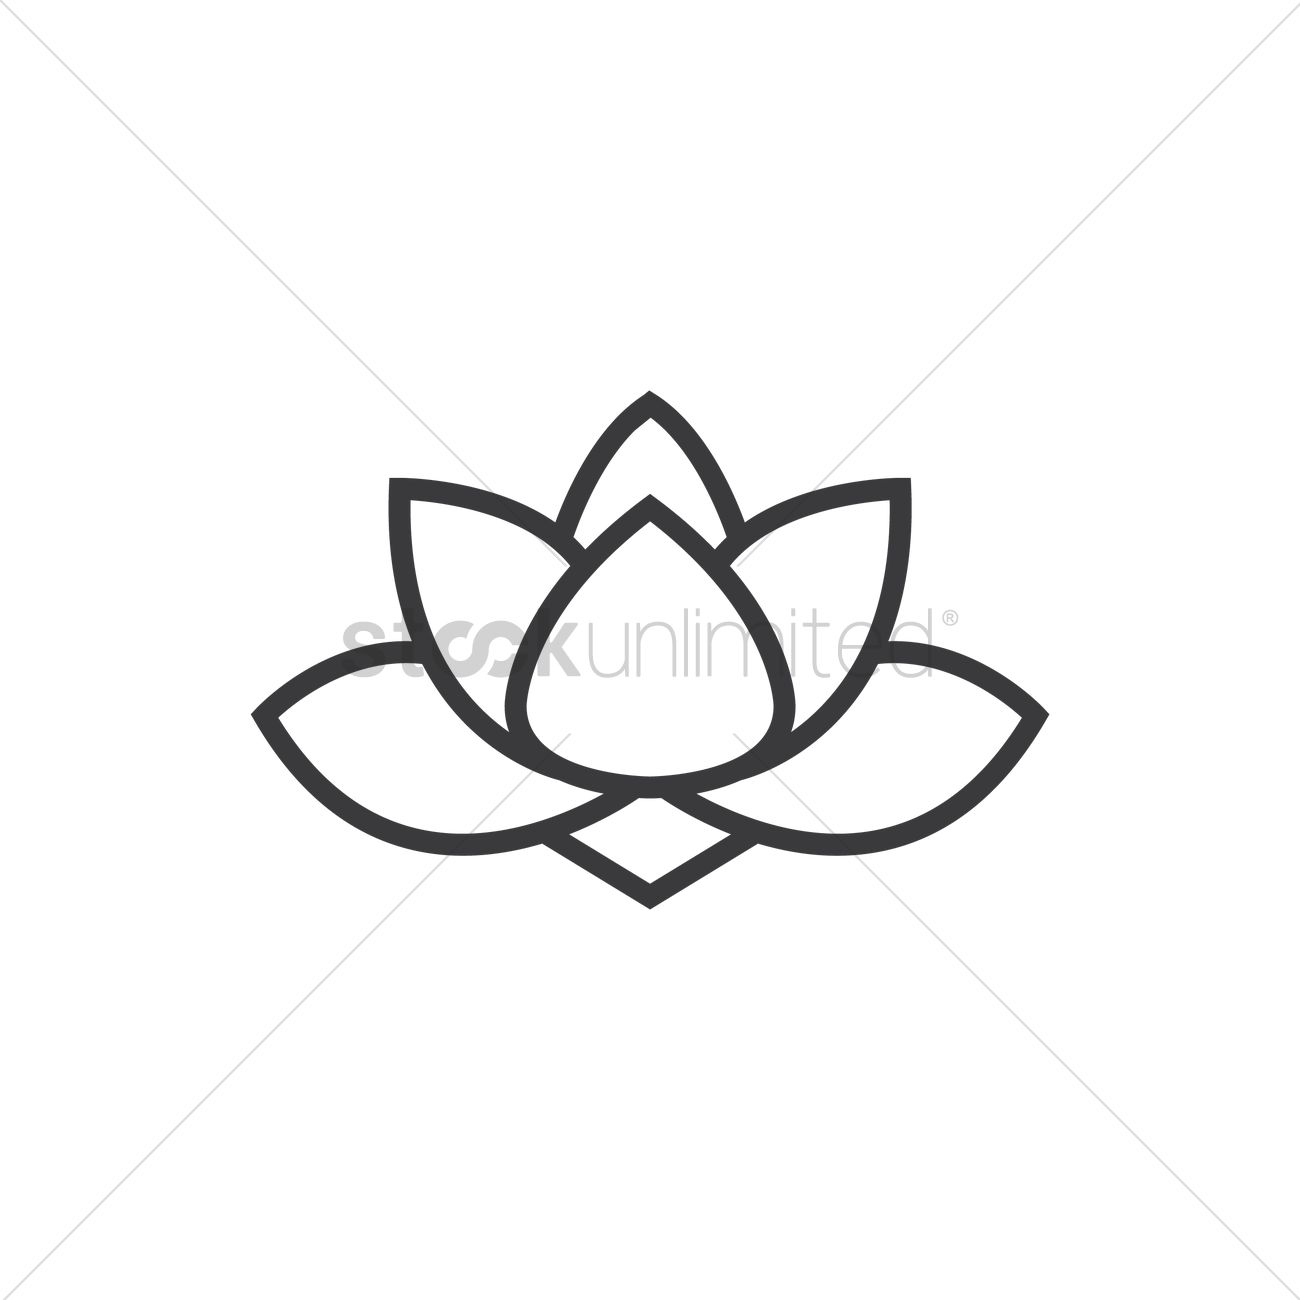 Chinese Lotus Flower Vector Image 1972754 Stockunlimited